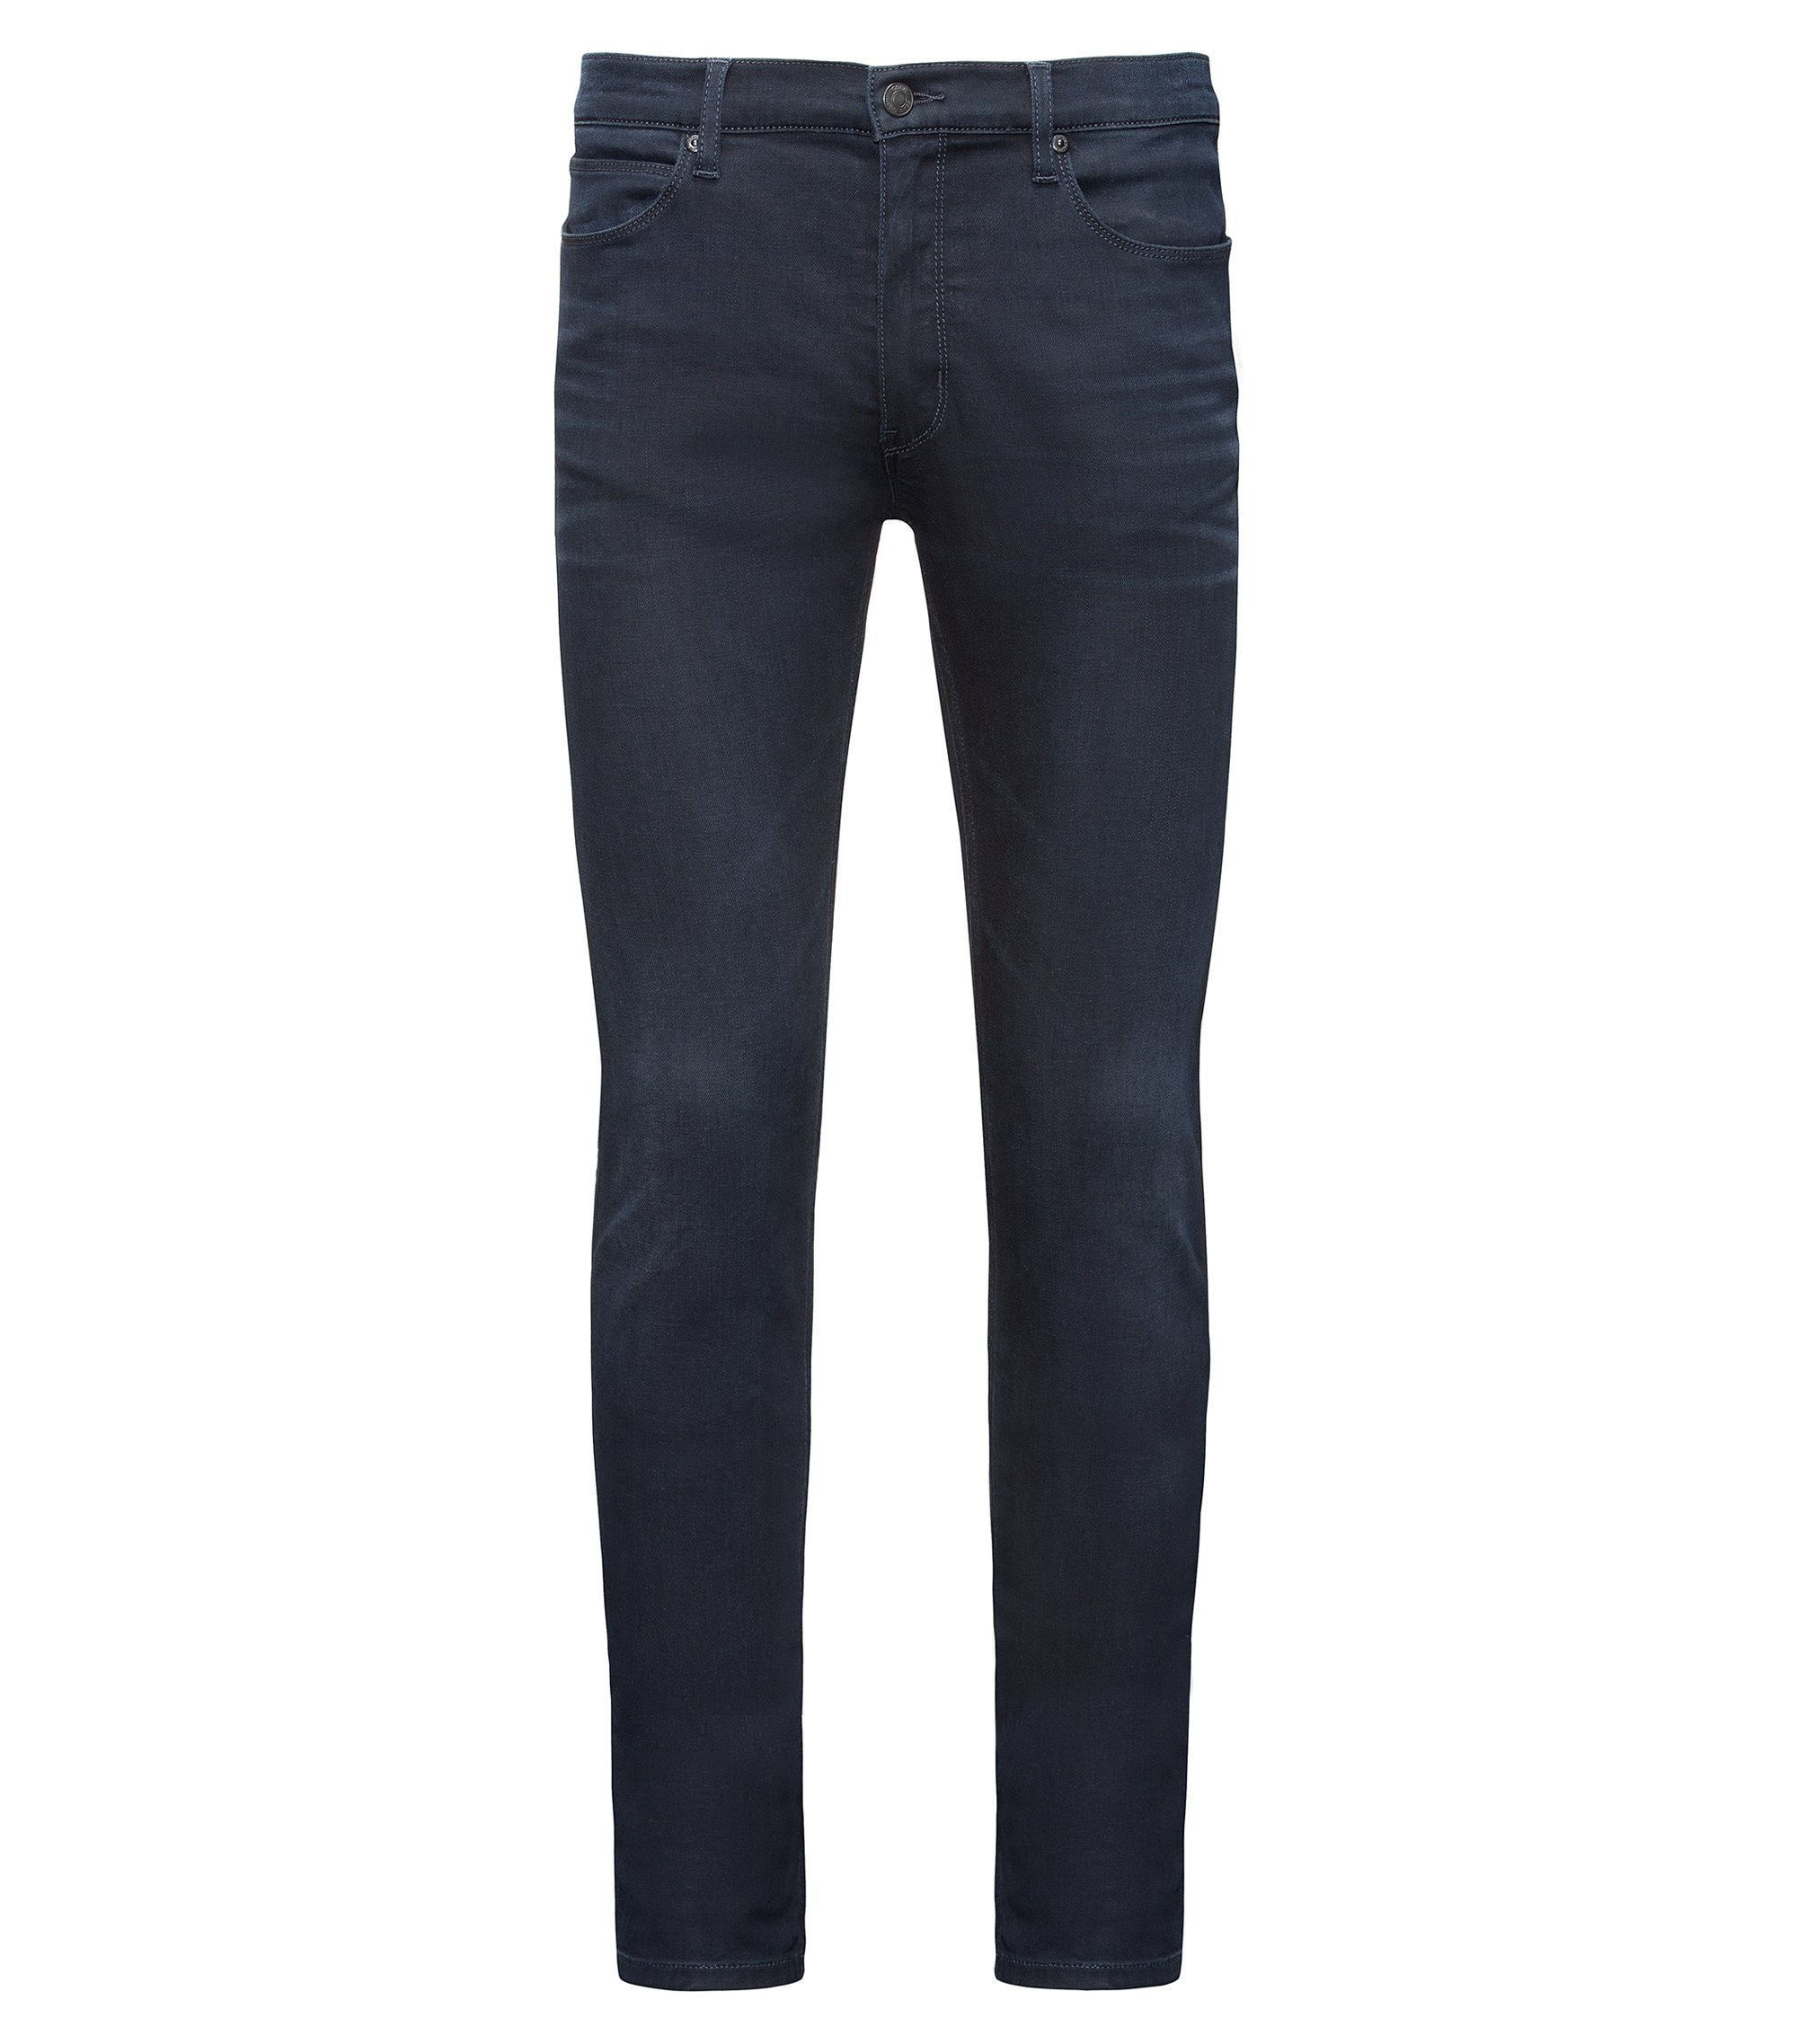 Jeans Skinny Fit en denim stretch confortable, de teinte bleu-noir, Bleu